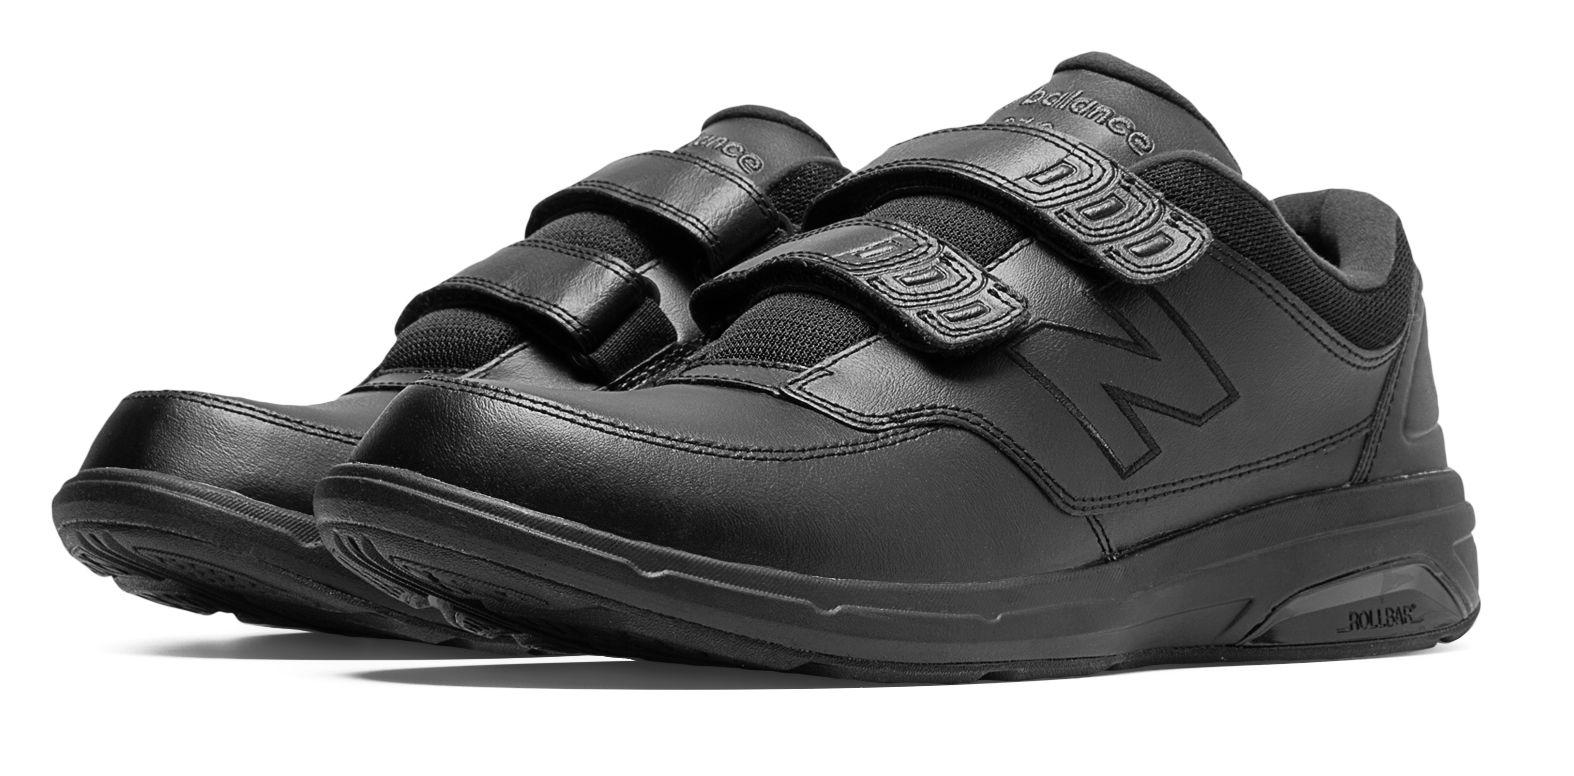 Womens New Balance Slip On Tennis Shoes